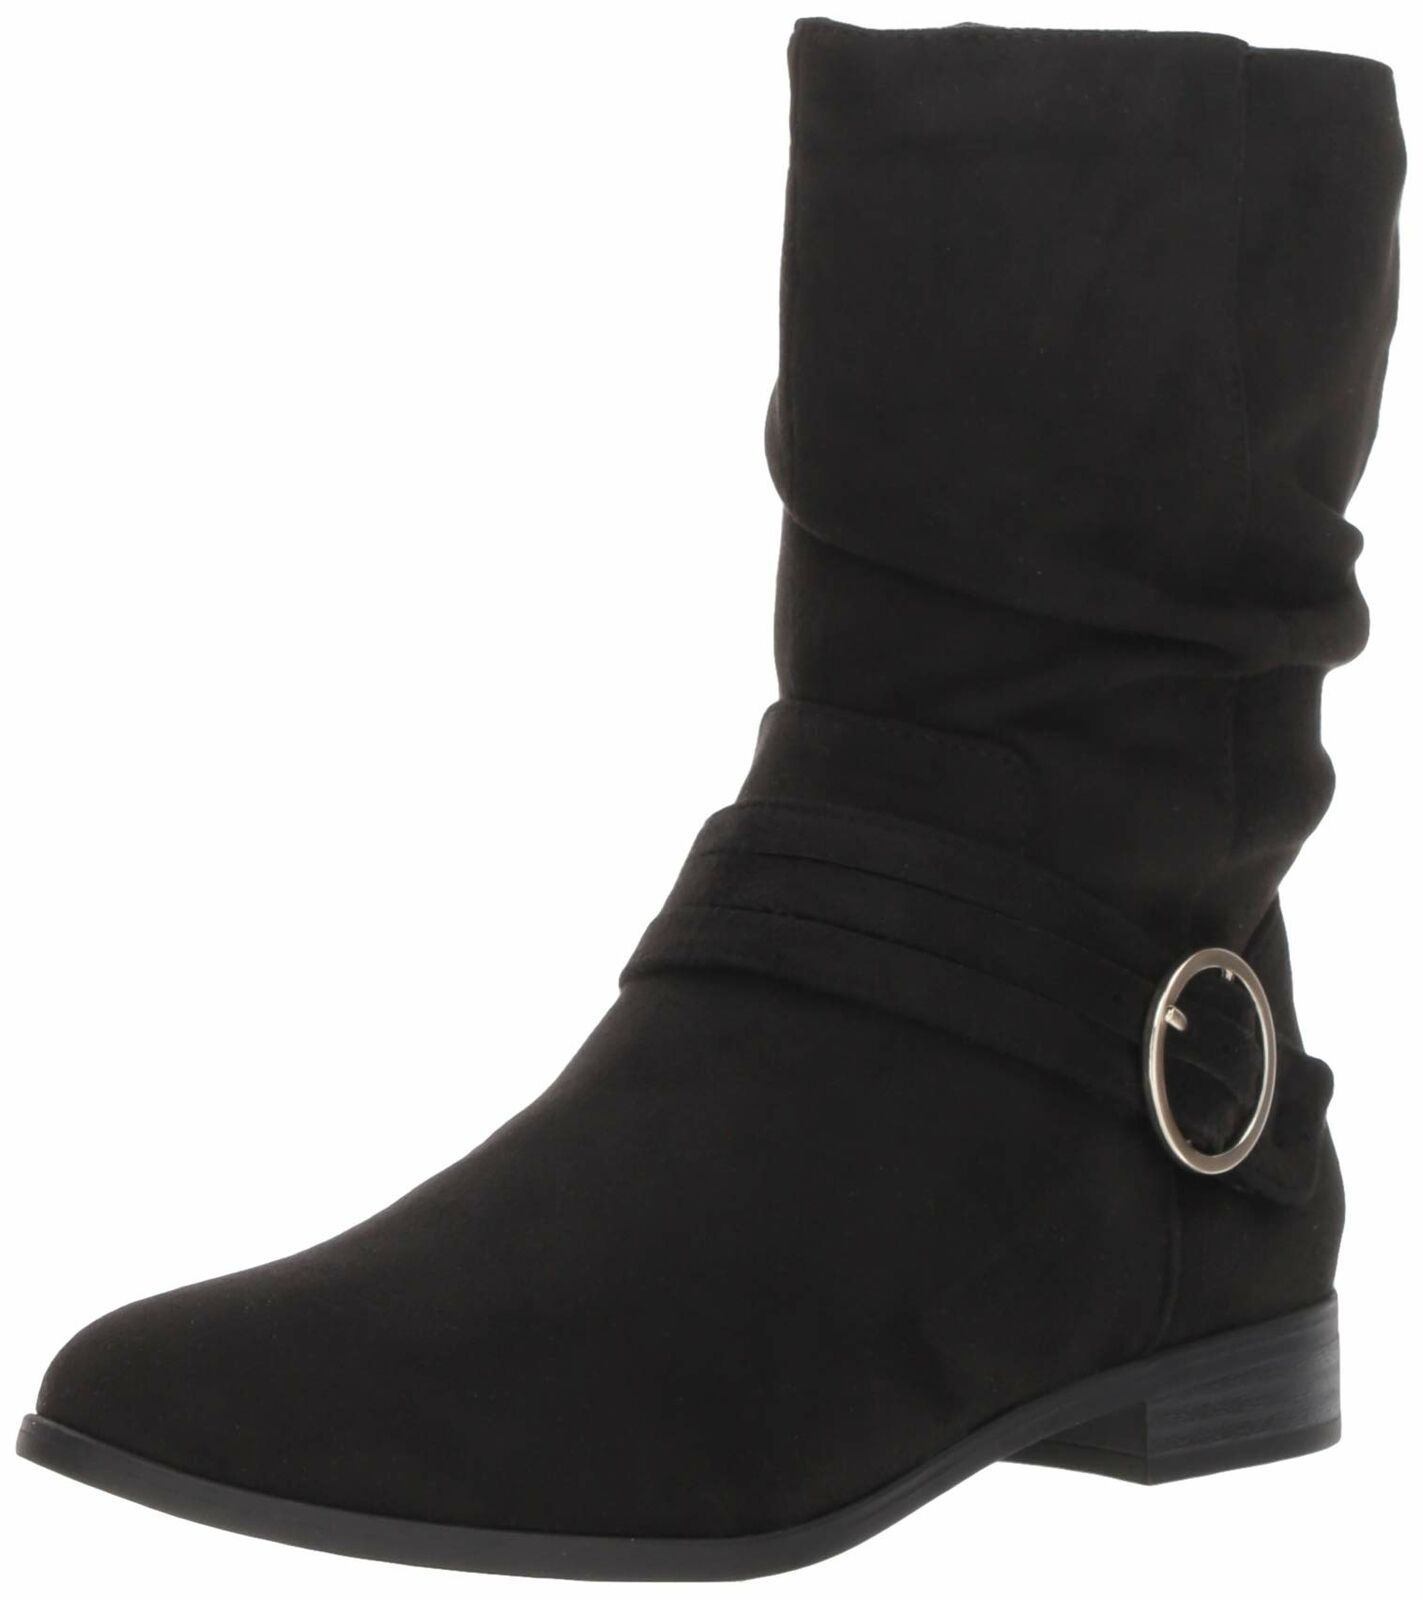 Primary image for Dr. Scholl's Shoes Women's Ripple Mid Calf Boot 6 Black Microfiber